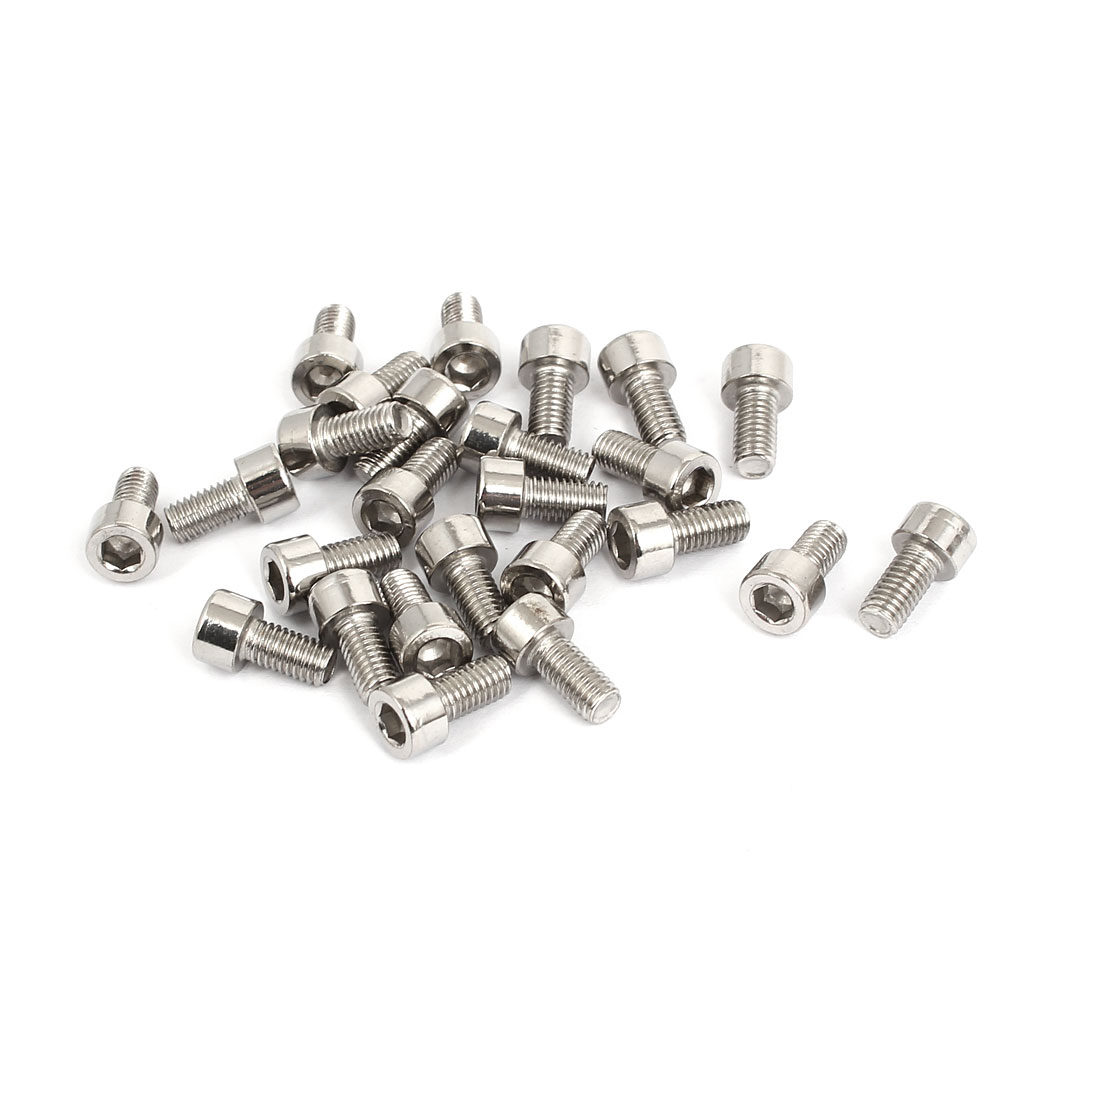 25pcs Stainless Steel Hex Key Socket Head Cap Screws Bolts M5x0.8mmx10mm